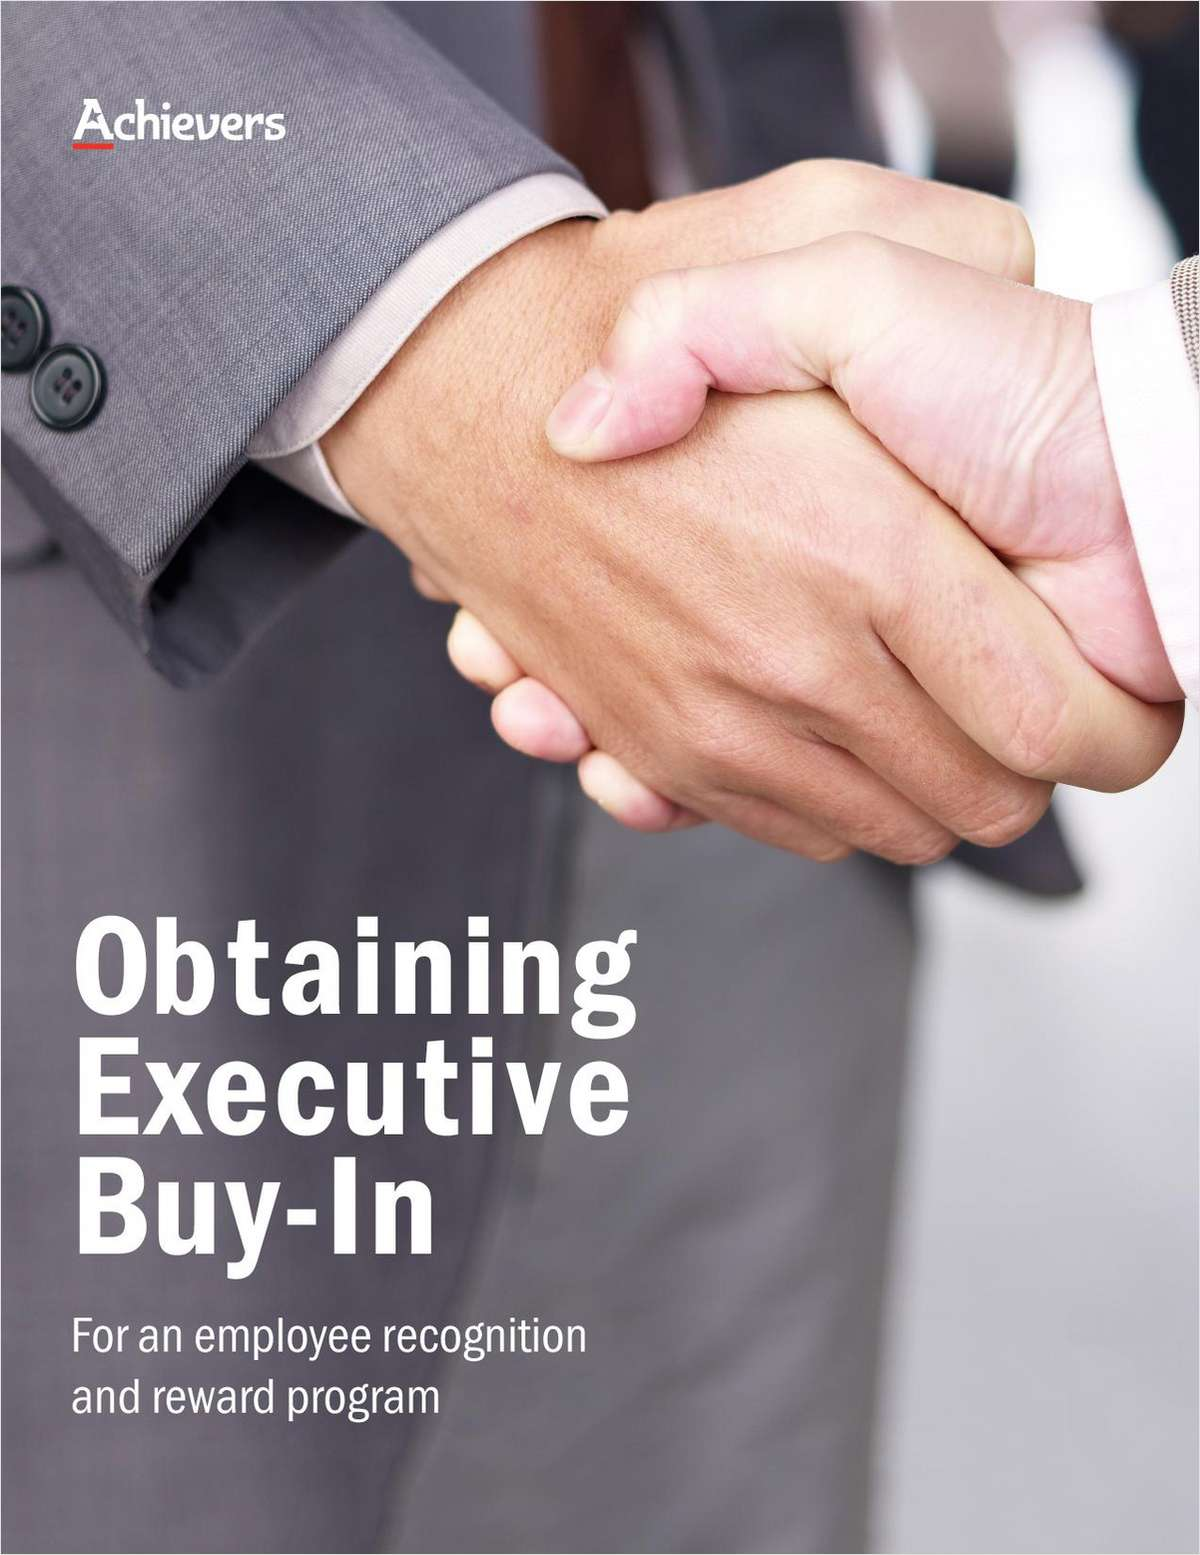 Obtaining Executive Buy-In for an Employee Recognition and Reward Program